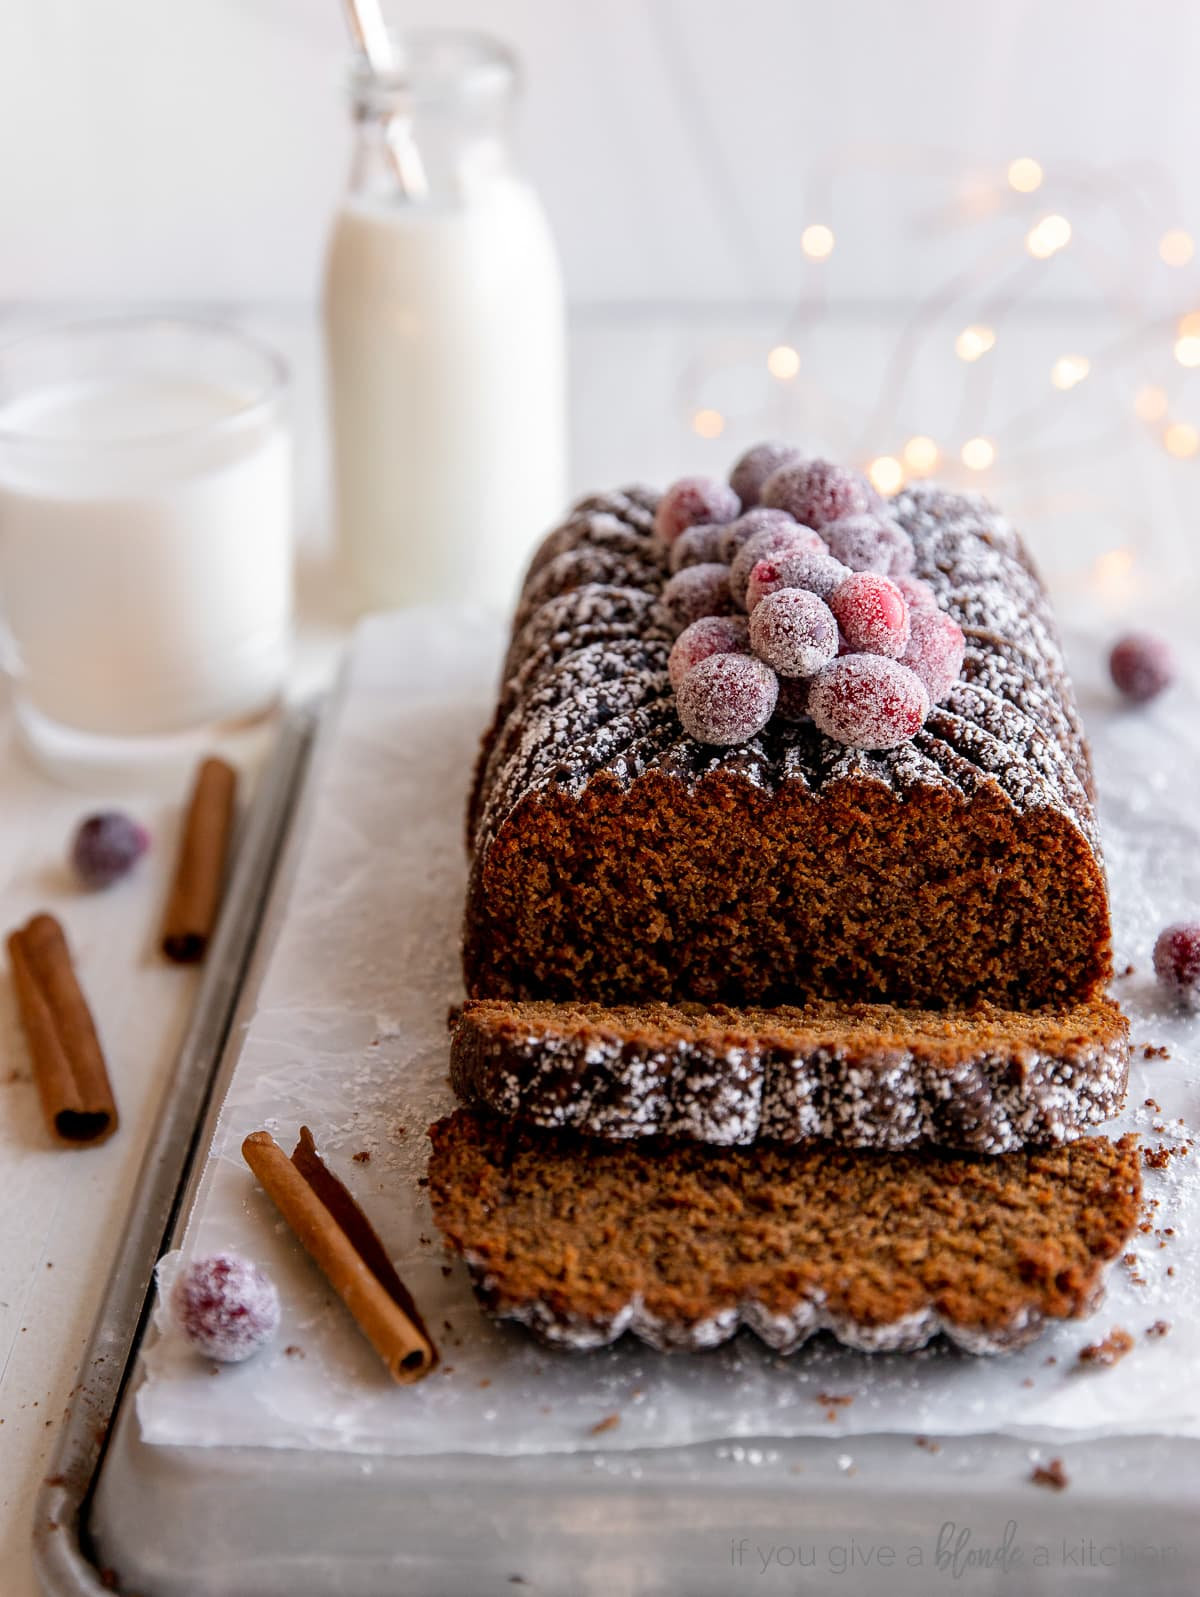 gingerbread loaf with two slices cut off the end; loaf topped with sugared cranberries and confectioners' sugar